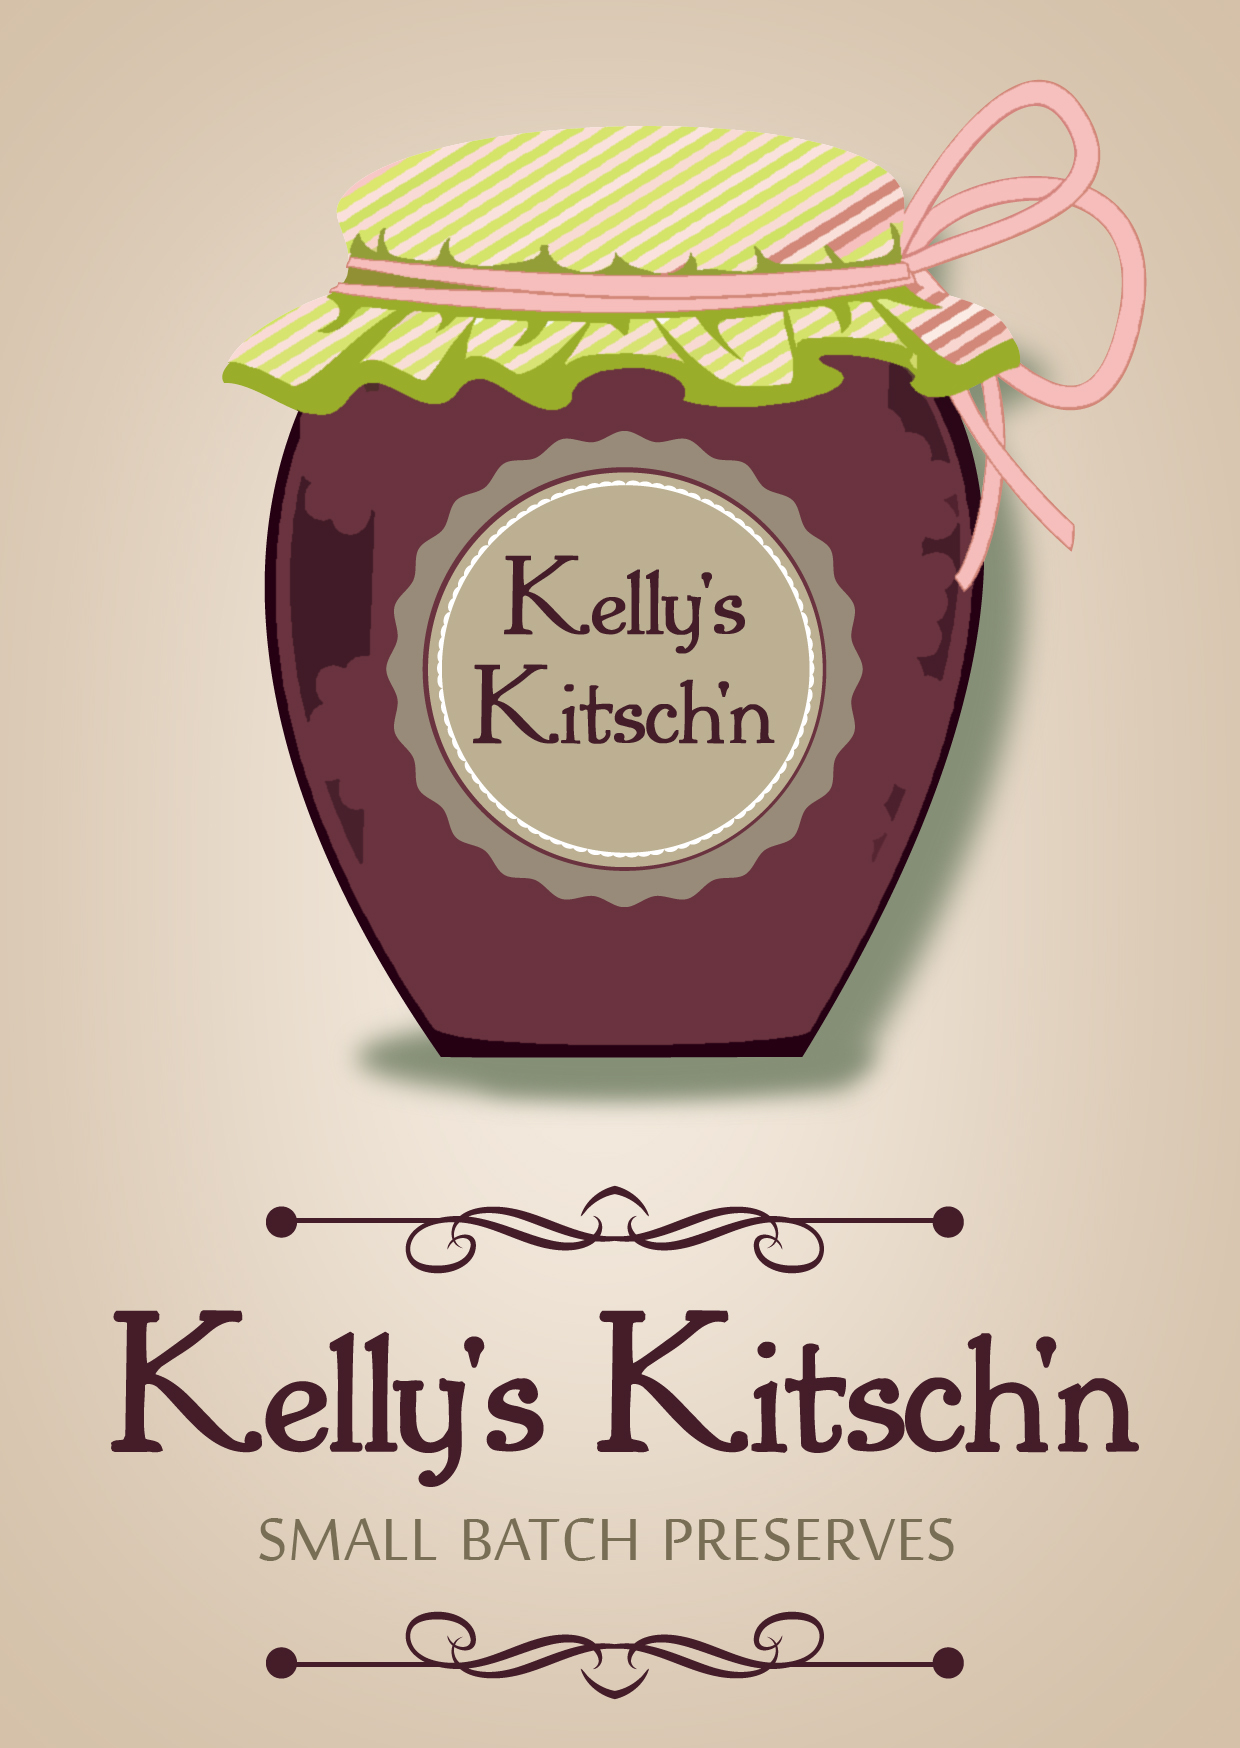 Logo Design by Private User - Entry No. 71 in the Logo Design Contest Unique Logo Design Wanted for Kelly's Kitsch'n.